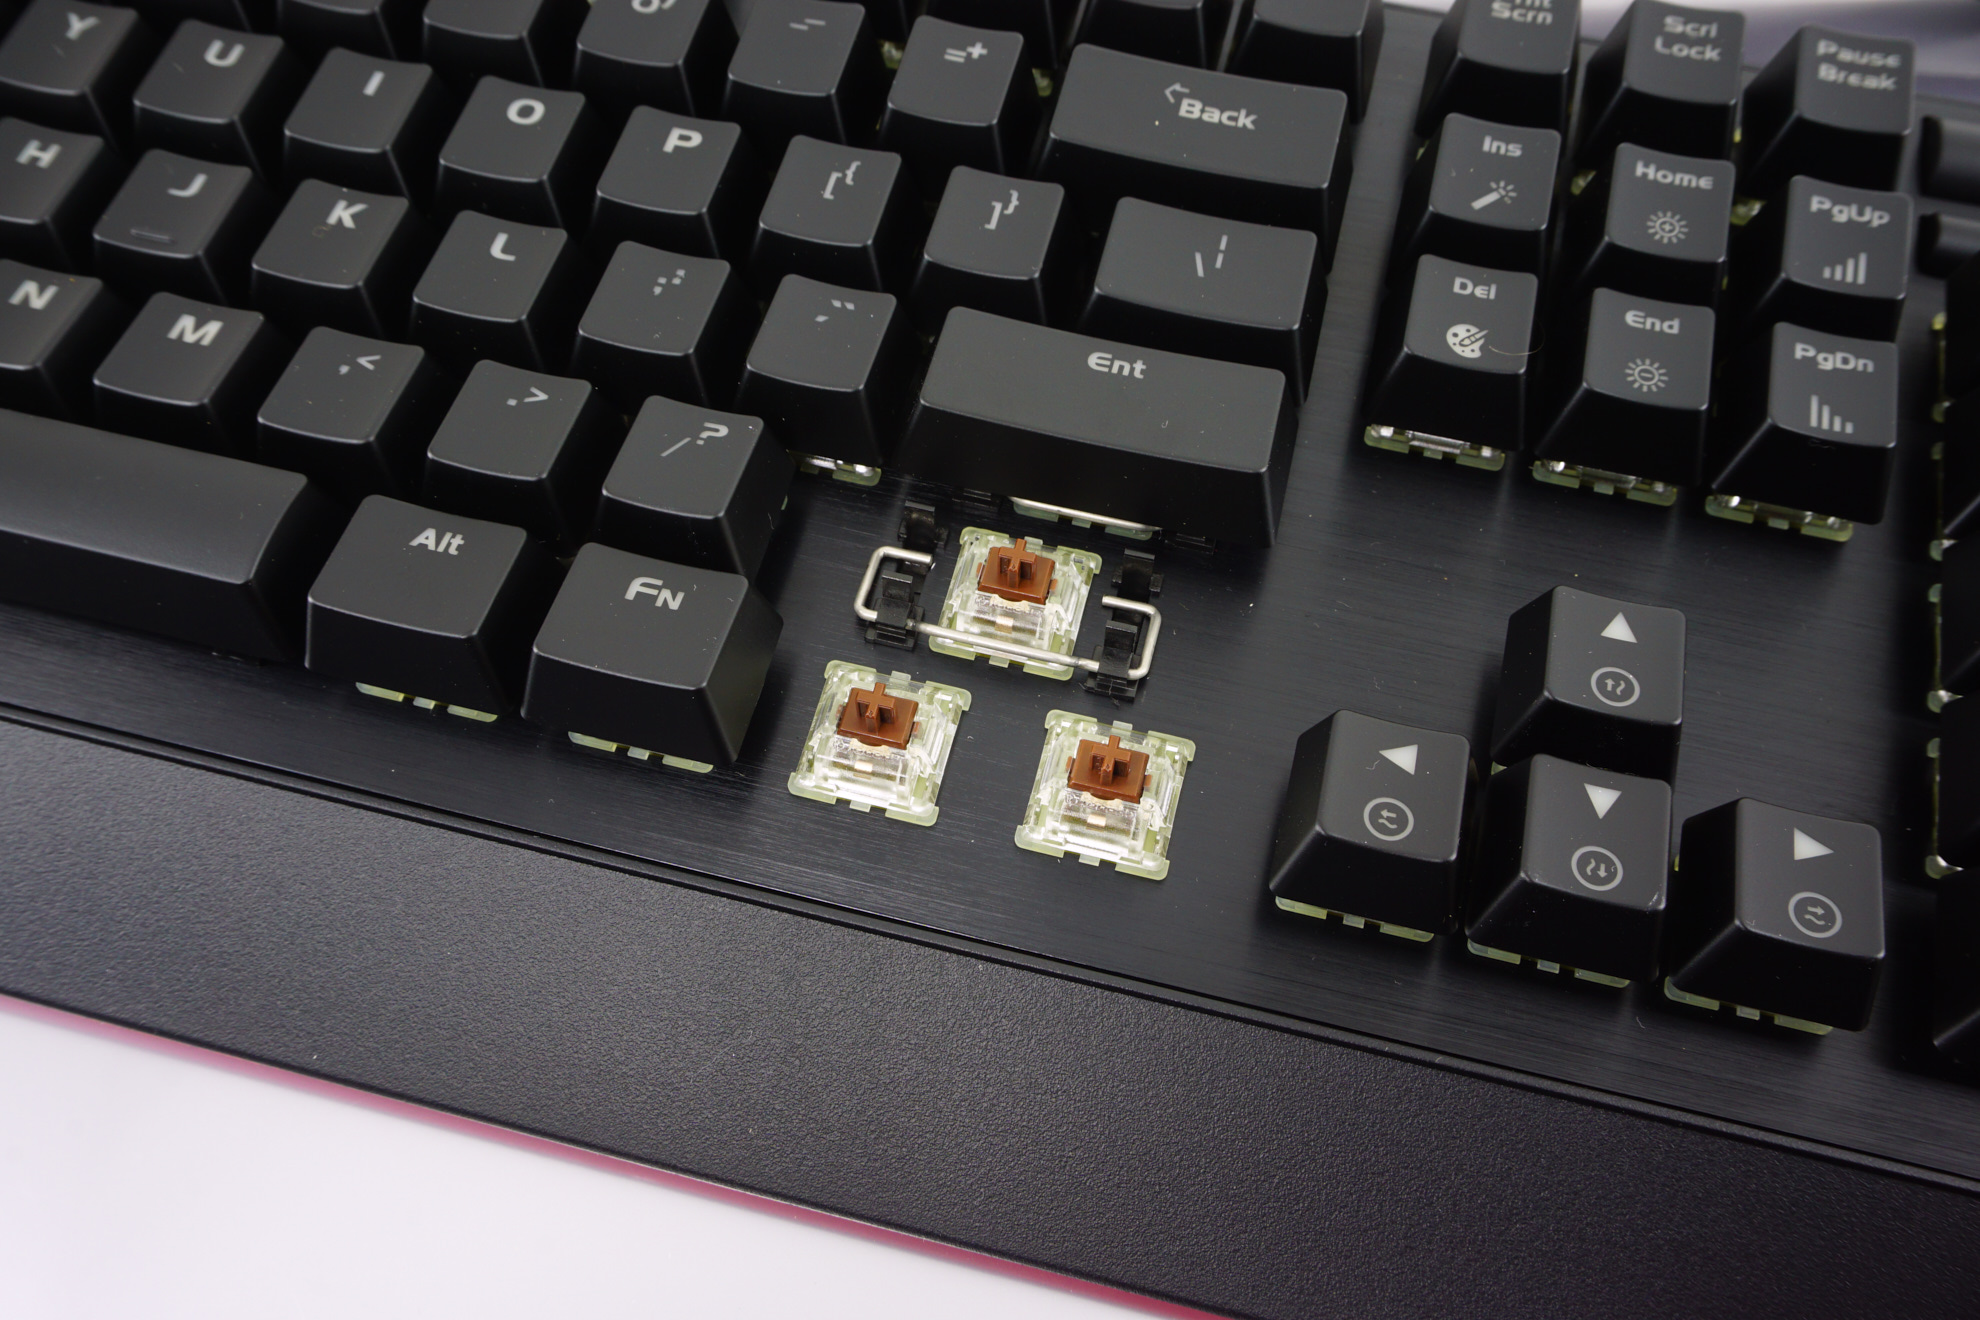 The Riotoro Ghostwriter Prism Mechanical Keyboard - The Riotoro